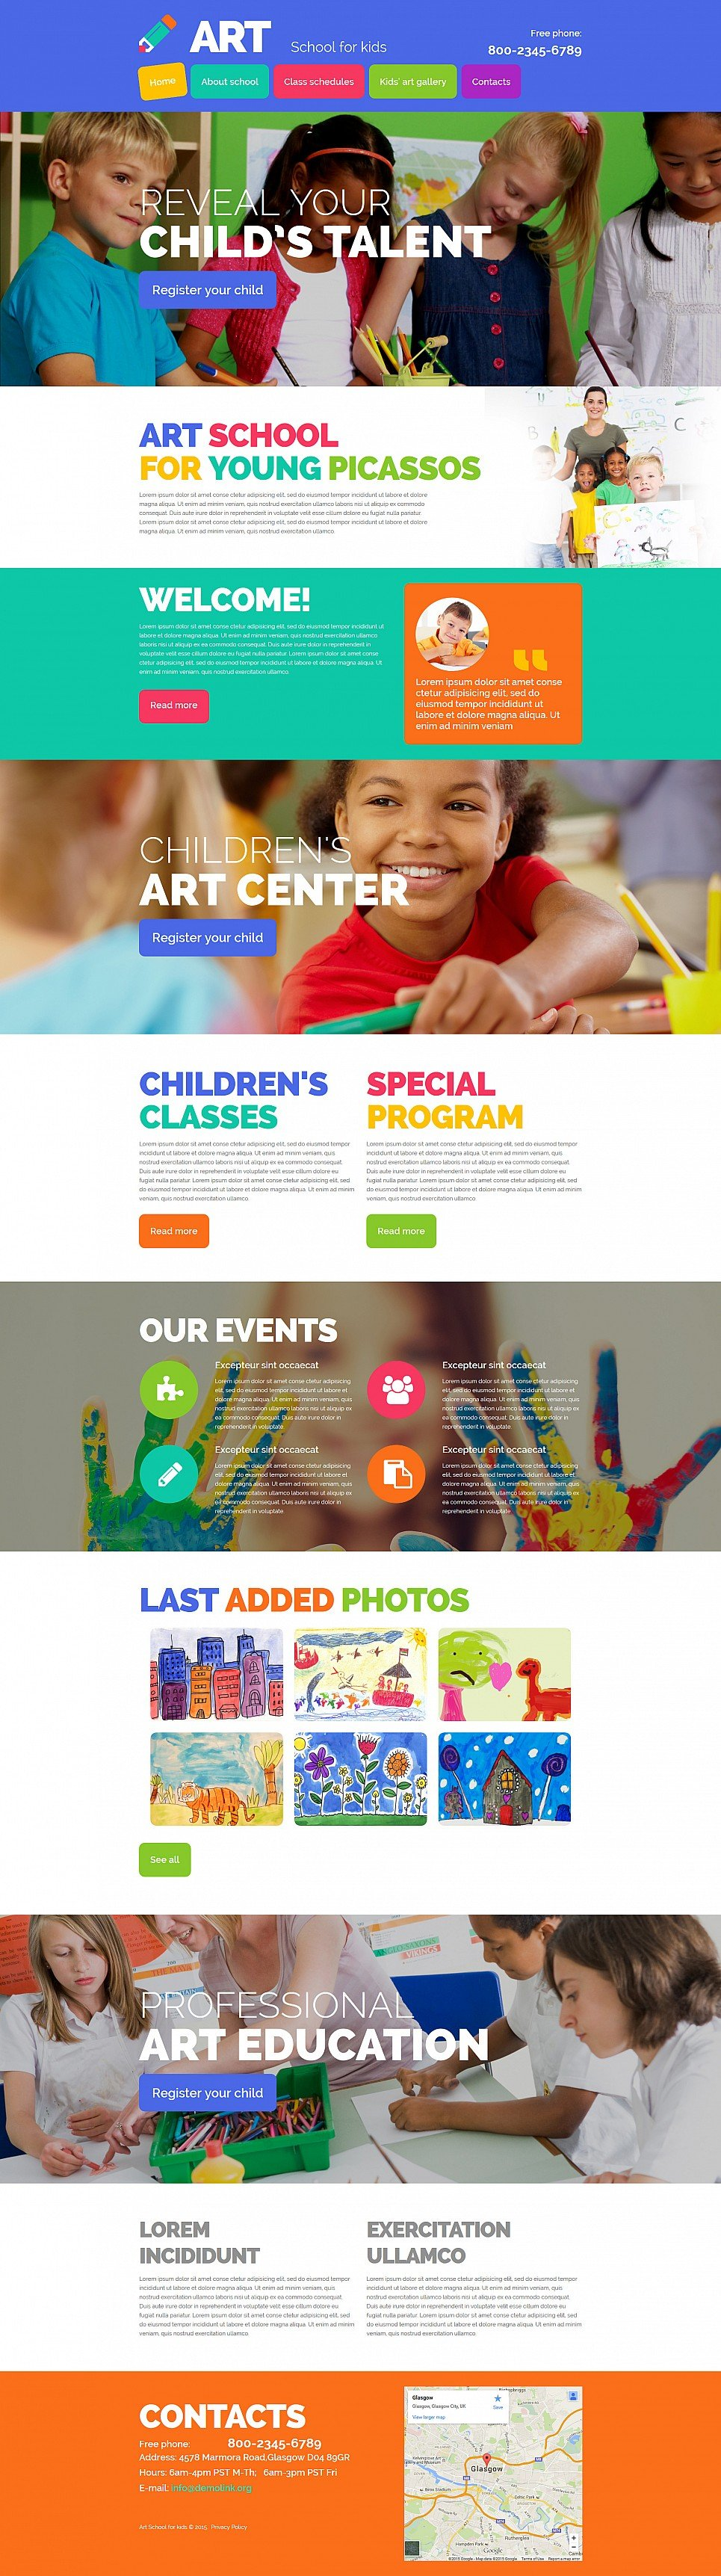 Web design for child school of art site